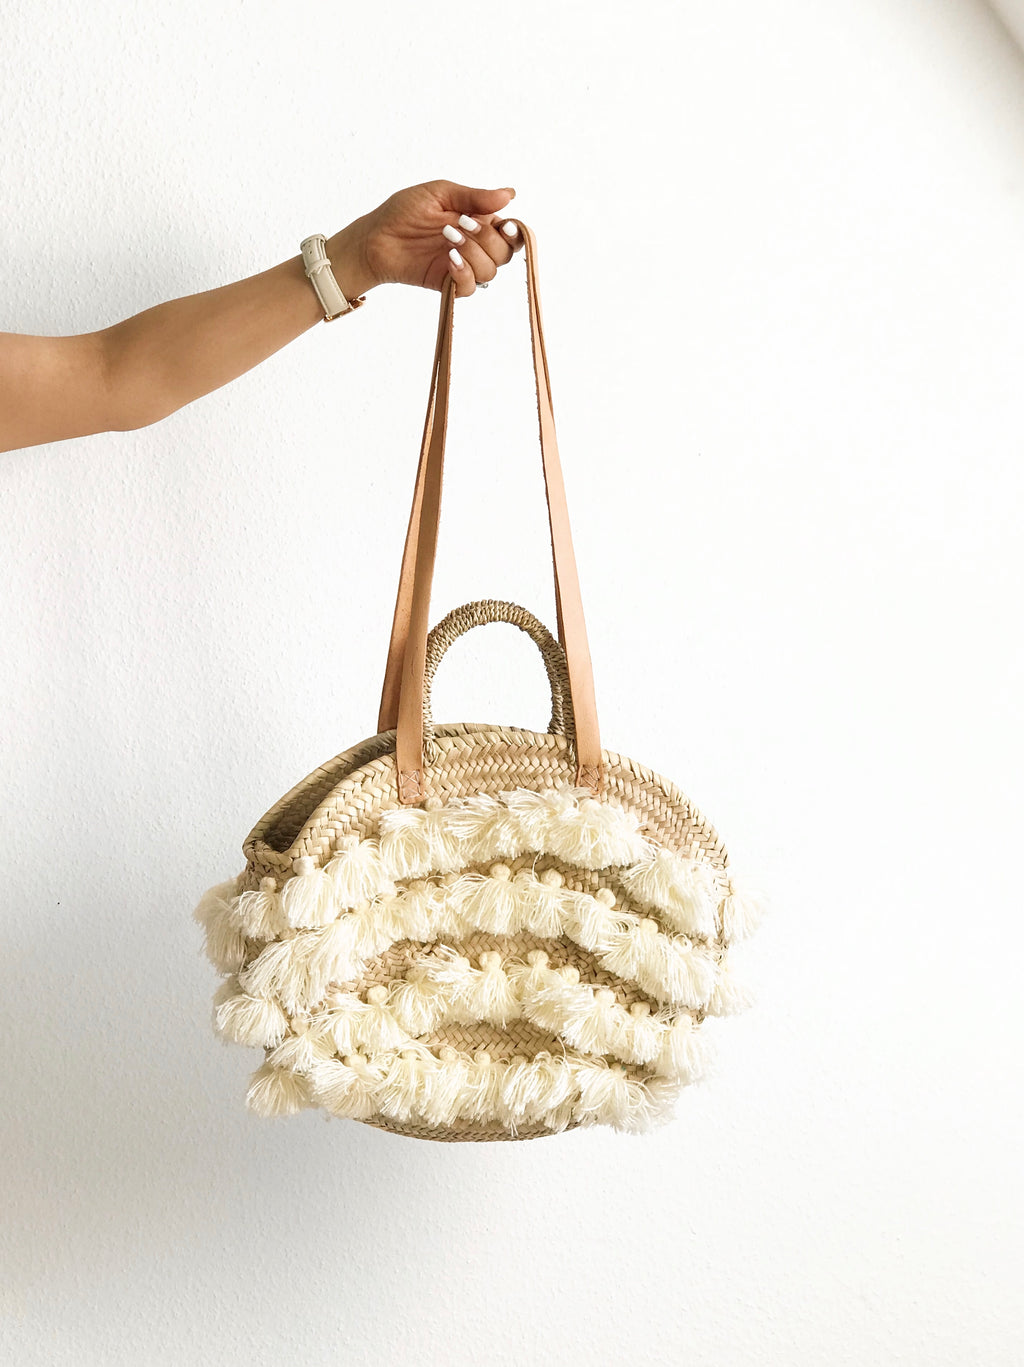 Handwoven Palm Shoulder+Hand Bag